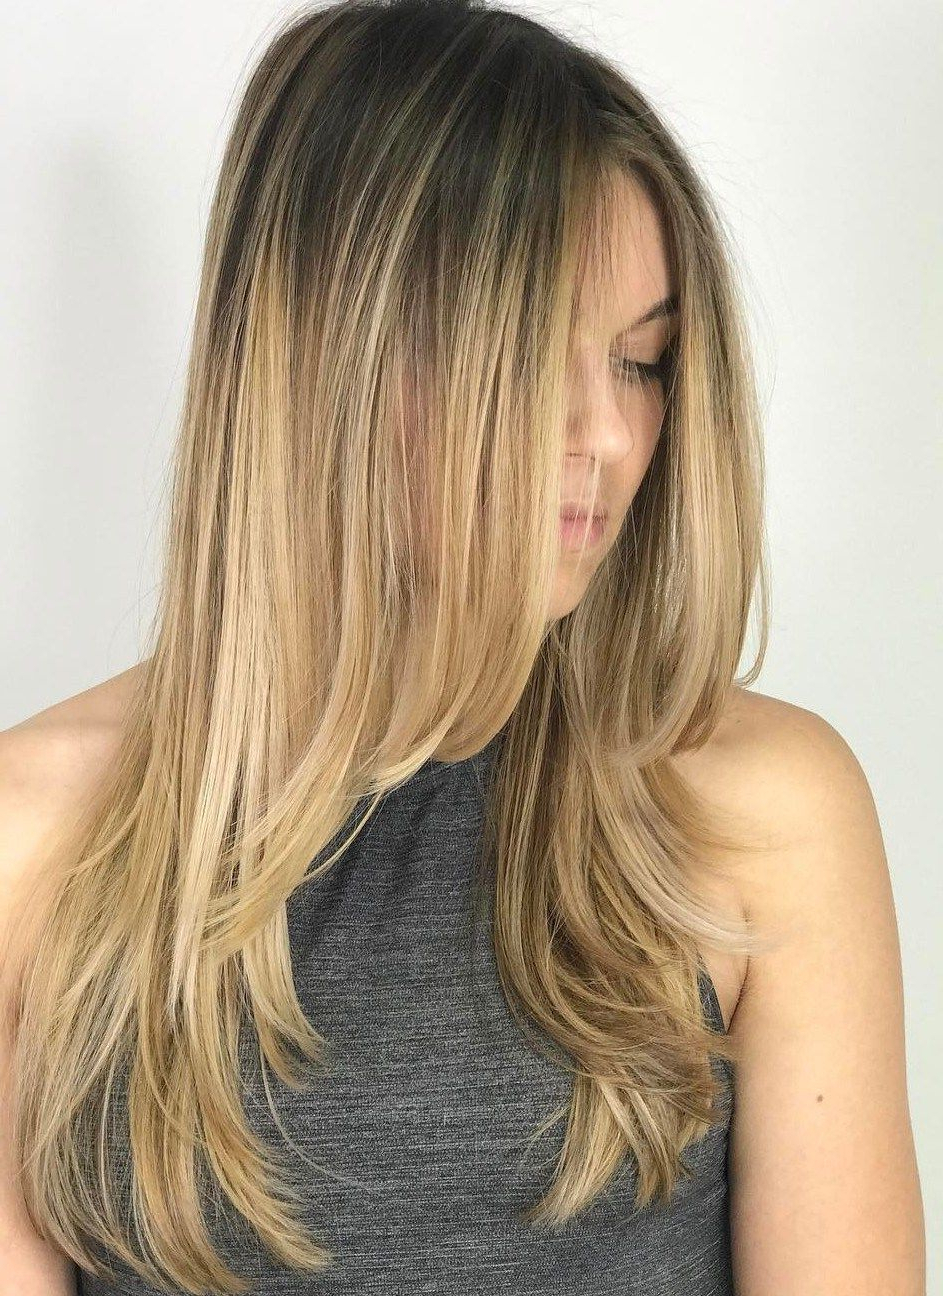 80 Cute Layered Hairstyles And Cuts For Long Hair In 2018 | Hair With Regard To Short Curly Hairstyles With Long Face Framing Pieces (View 12 of 20)